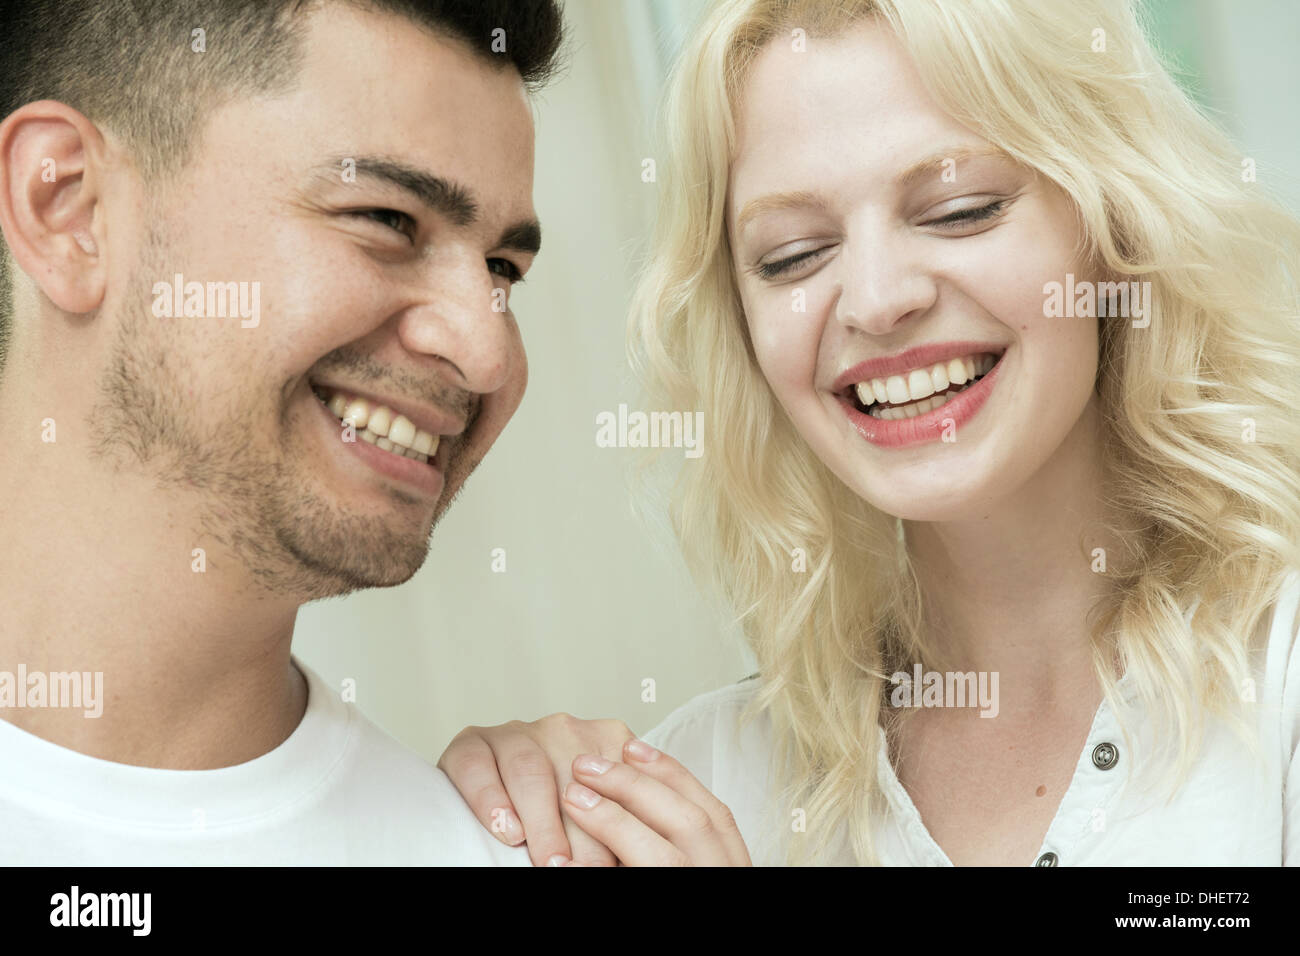 Young couple laughing Photo Stock